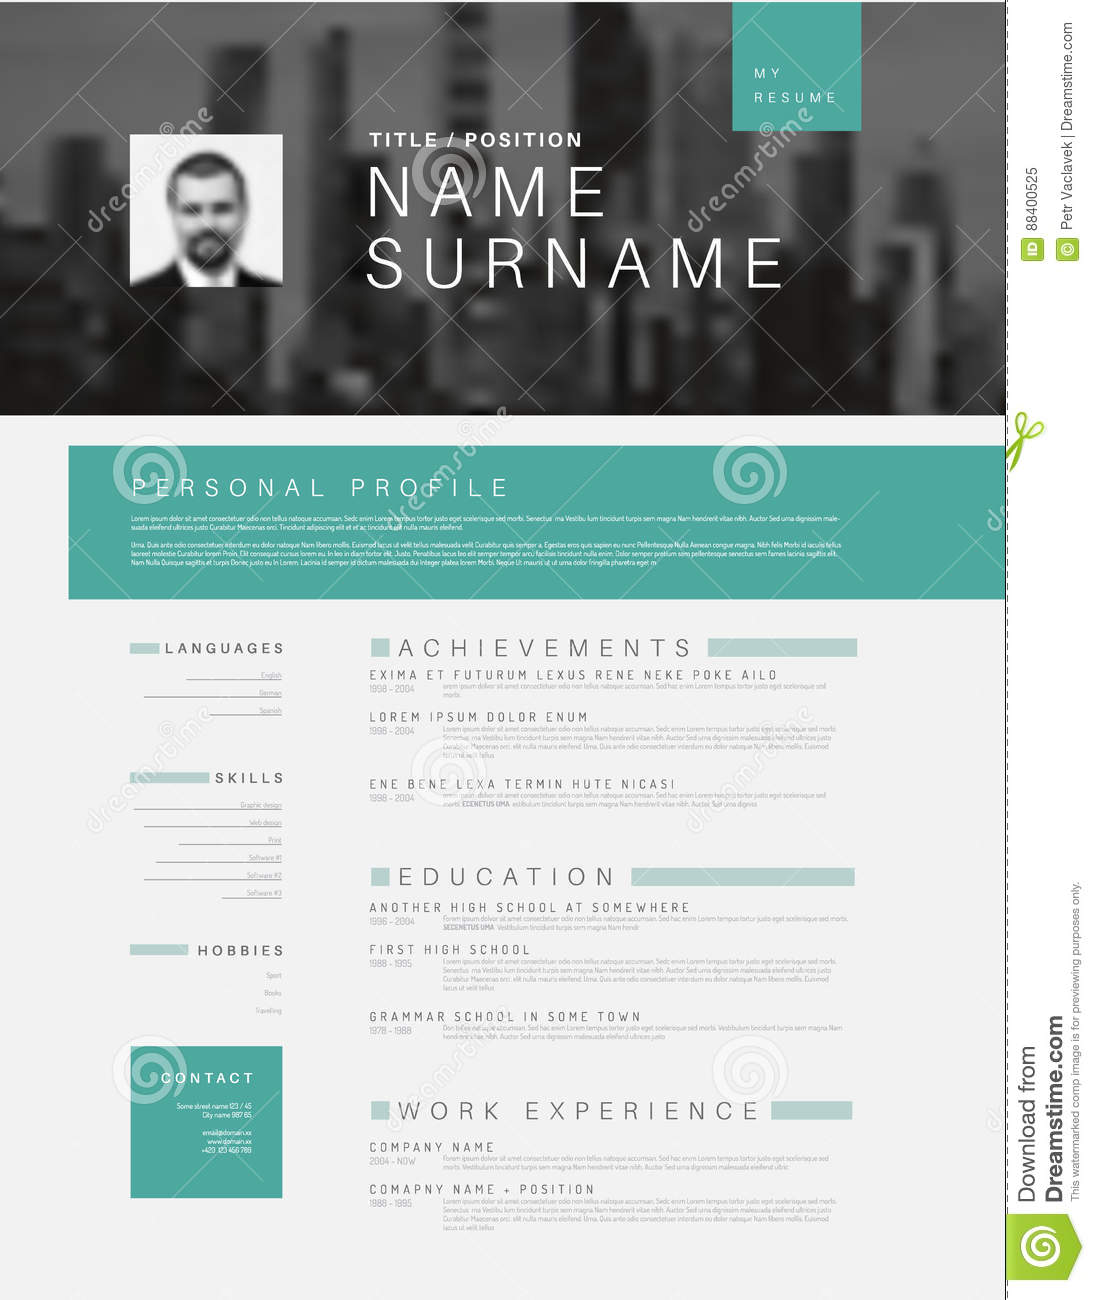 Minimalistic Cv Resume Template With Header Photo Stock Vector